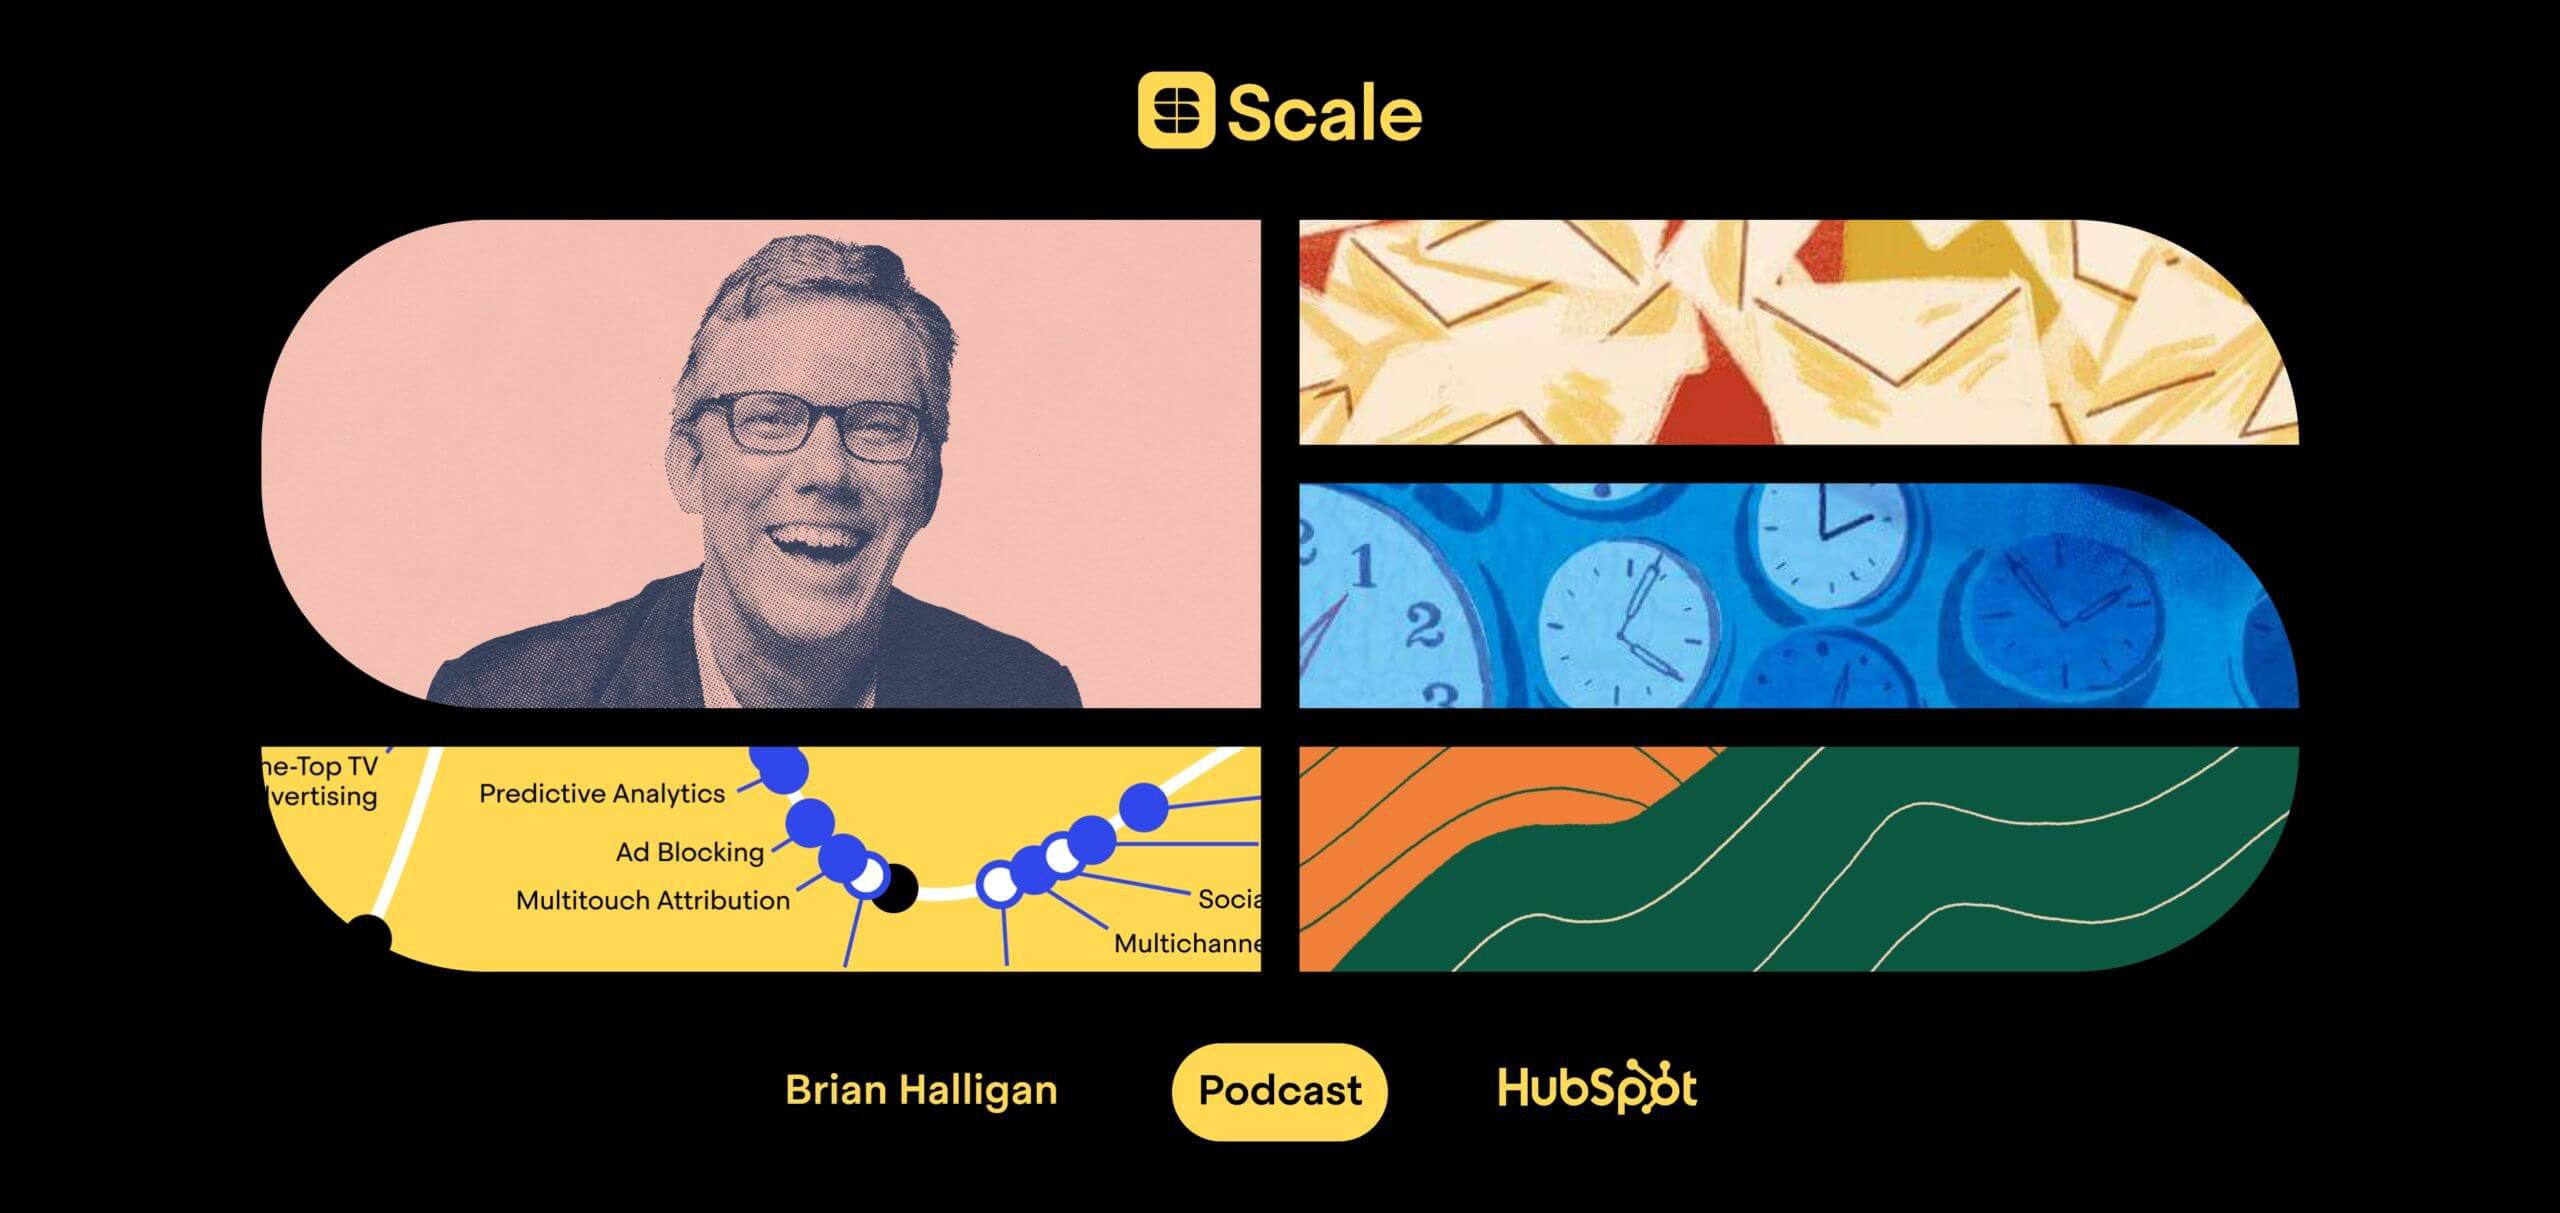 Getting conversational: HubSpot's CEO on a new species of disruptor